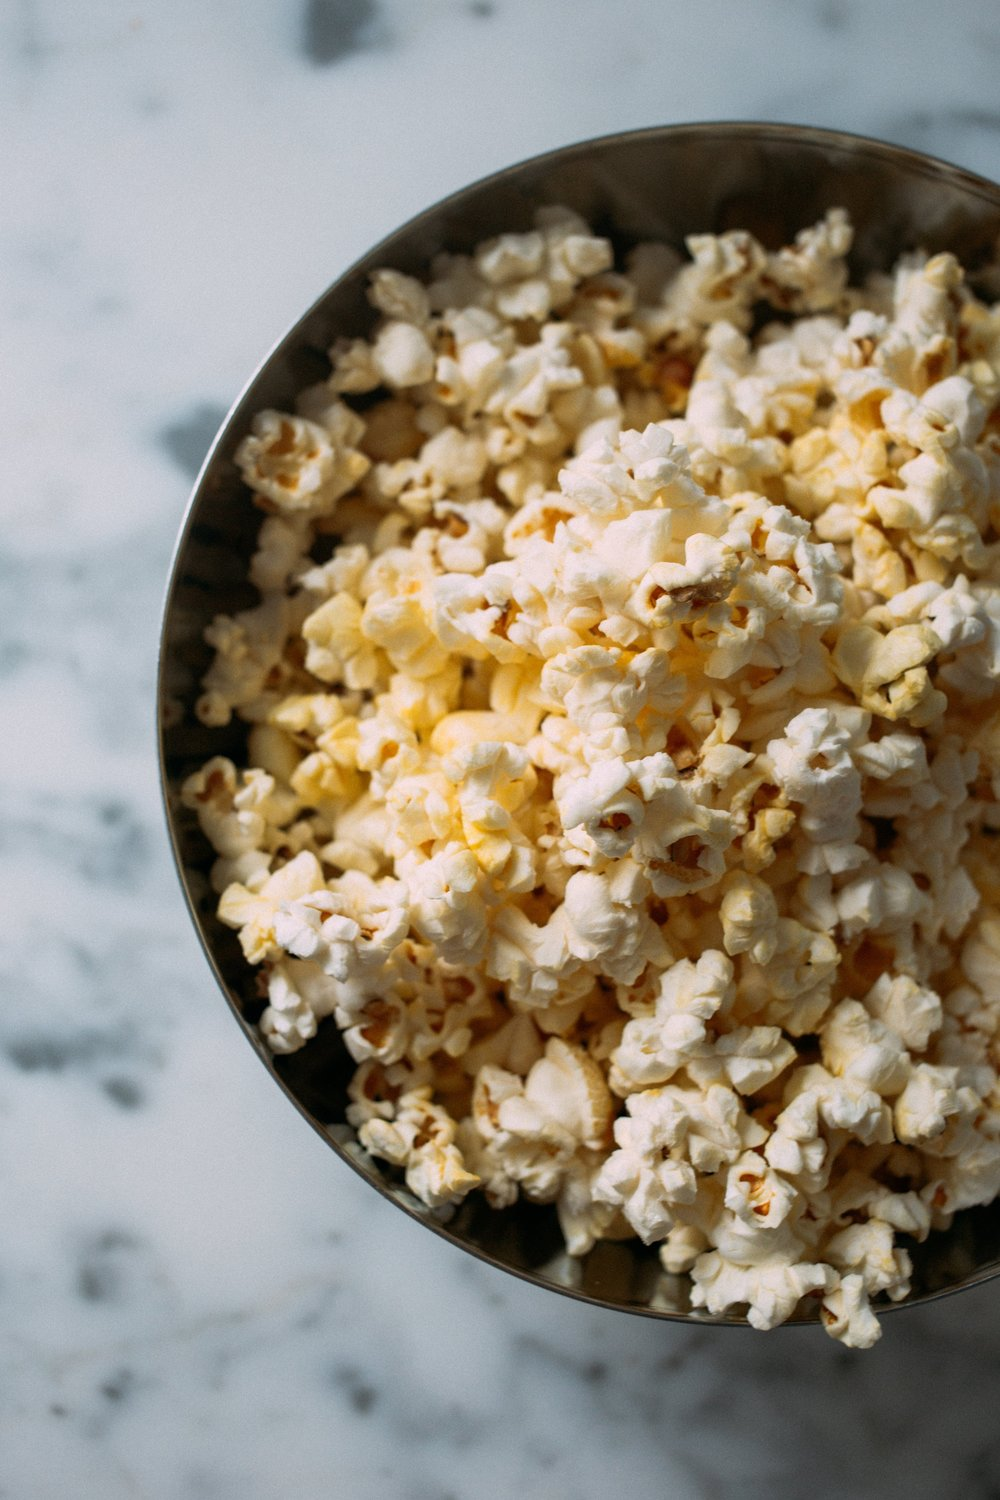 For every donation valued over $50 - Your child will receive a bag of freshly made kettle corn from the South Pasadena Farmer's Market in honor of National Popcorn Day, January 18, 2019.